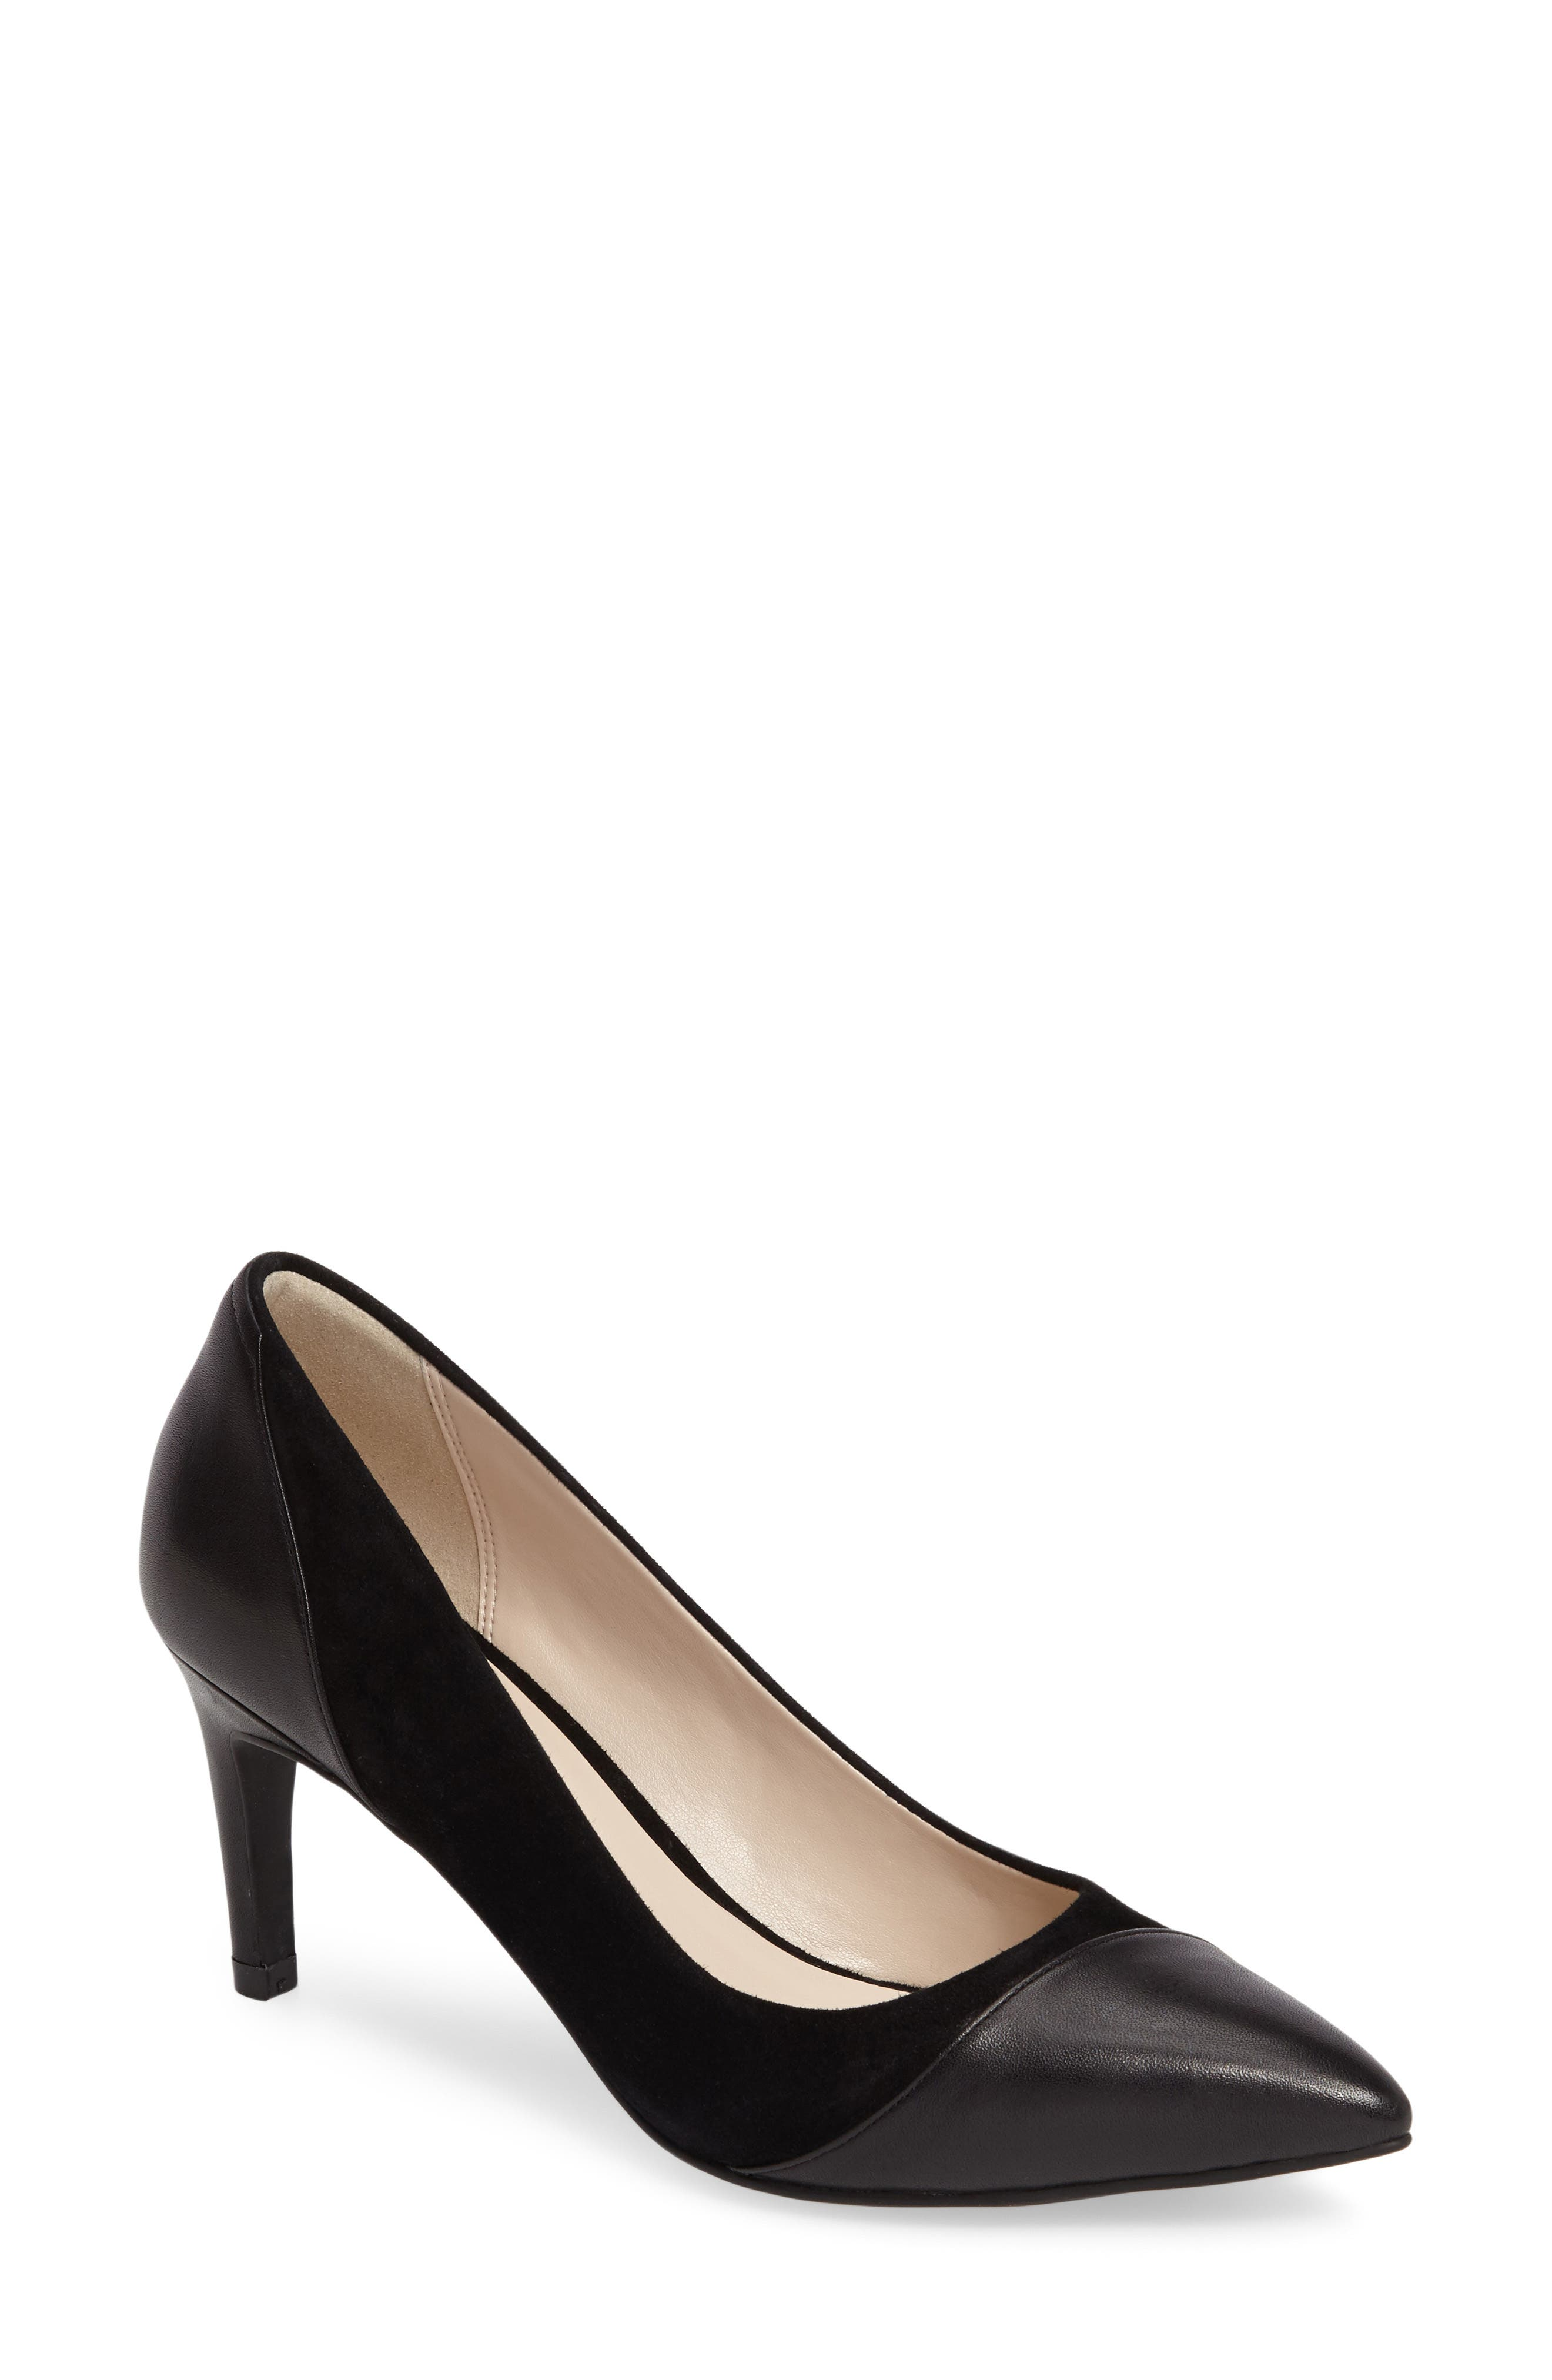 Shayla Pointy Toe Pump,                         Main,                         color, Black Suede